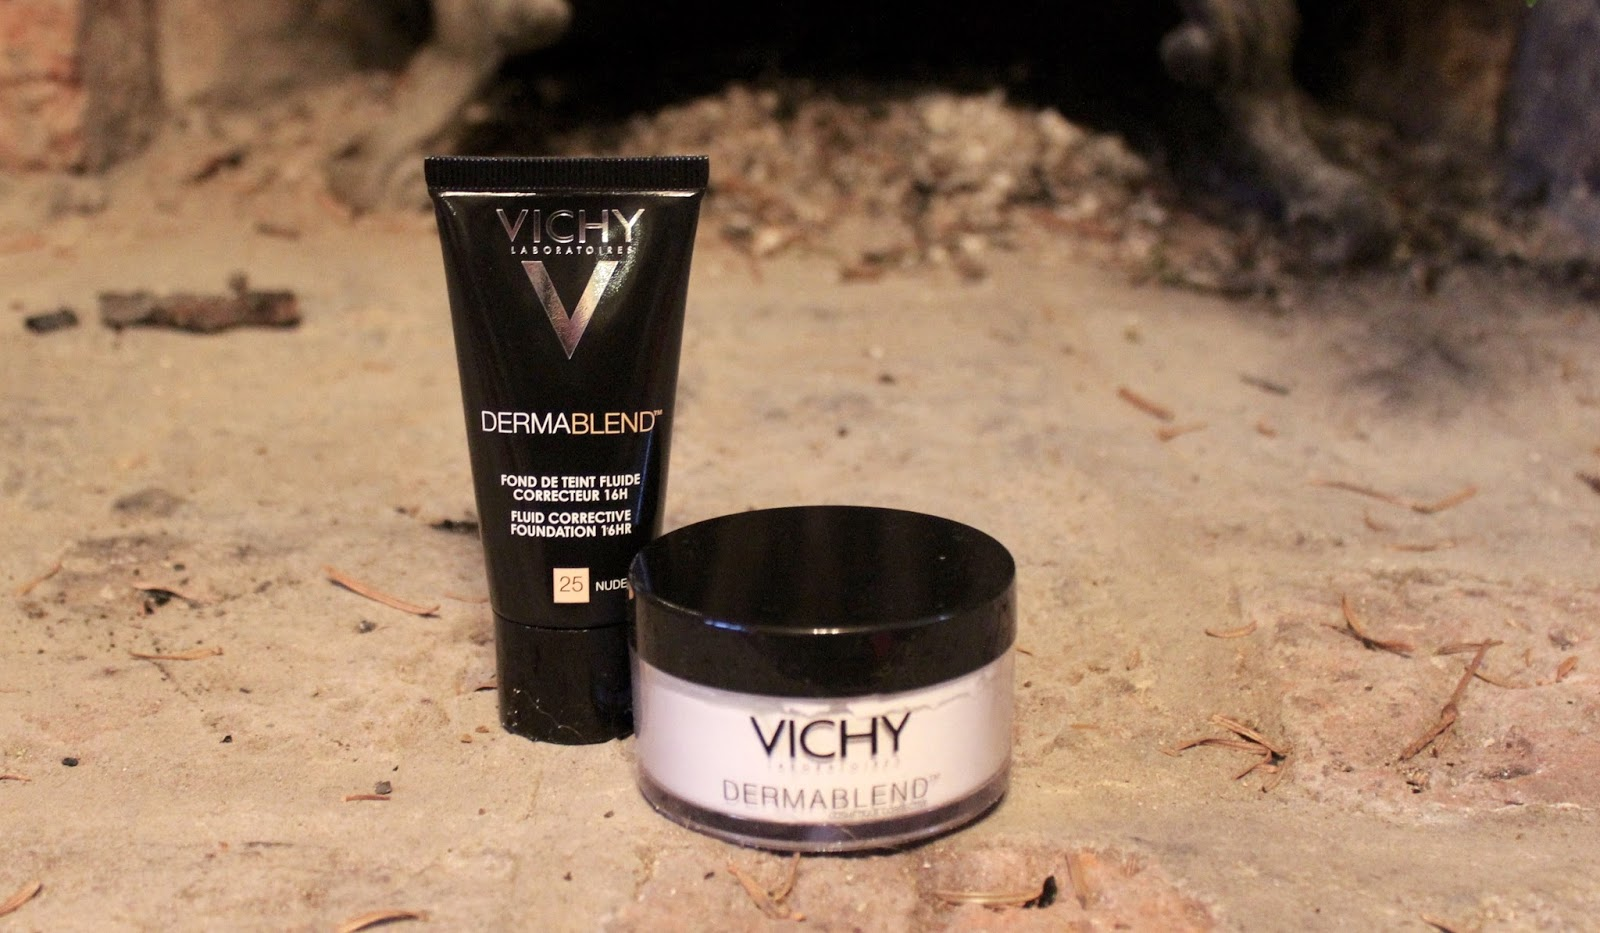 Vichy Dermablend foundation and powder